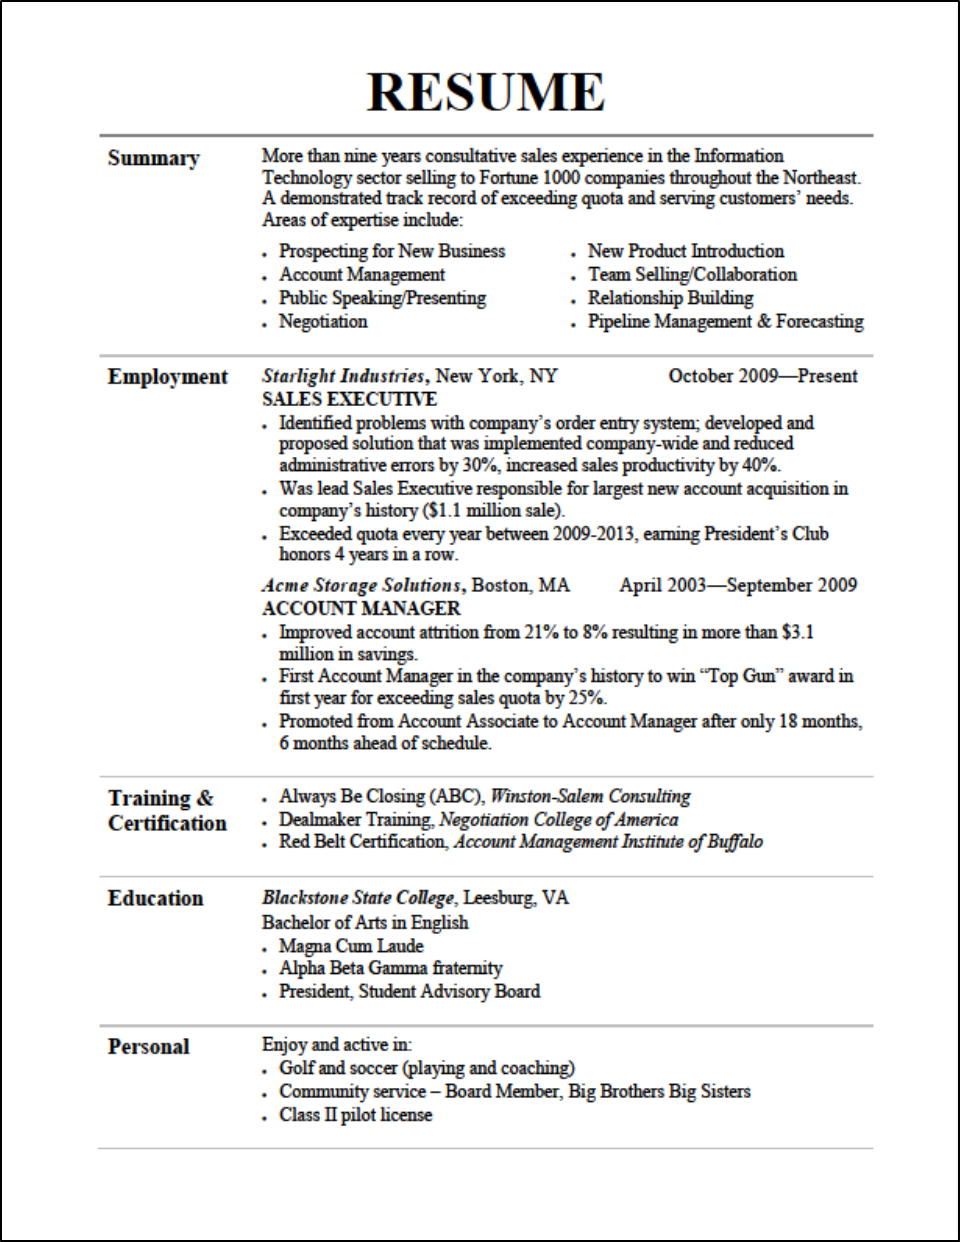 Career Builder Resume Templates Resume Editing Servicesprofessional Resume Writing Services That